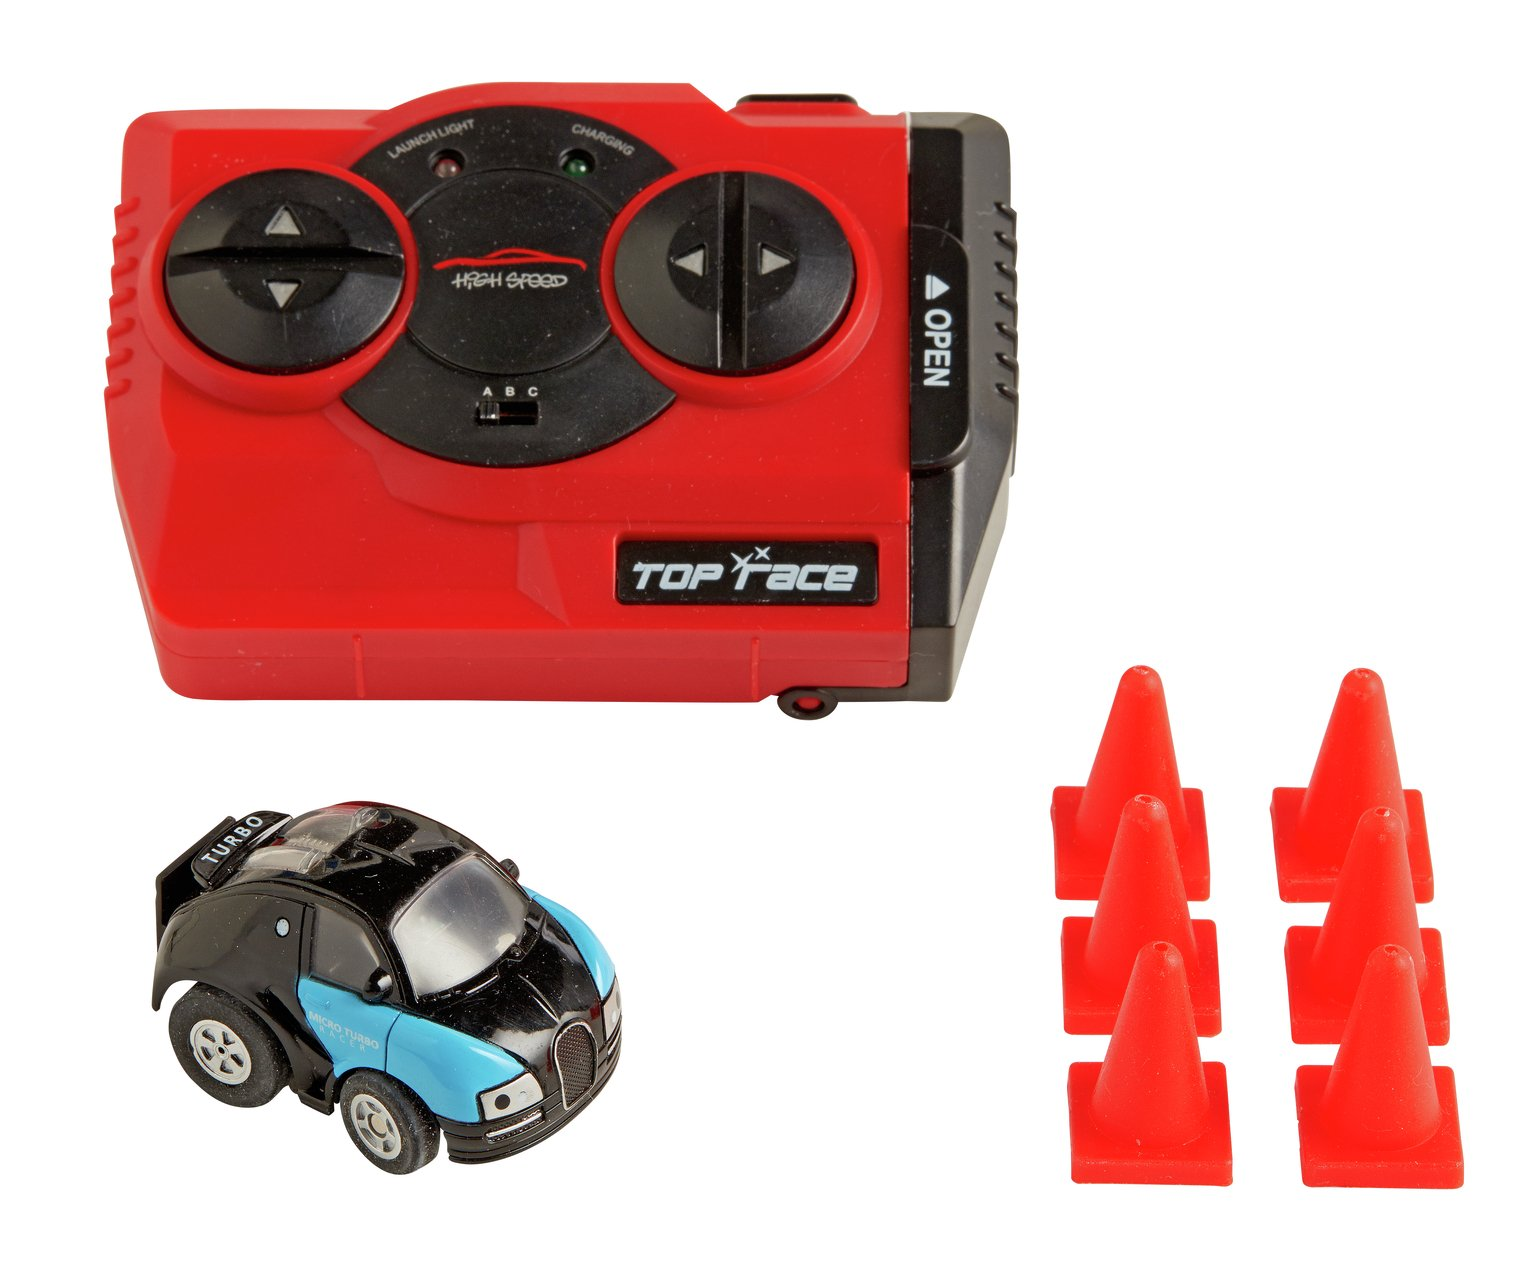 Image of RED5 Q2 Turbo Racer Remote Control Car